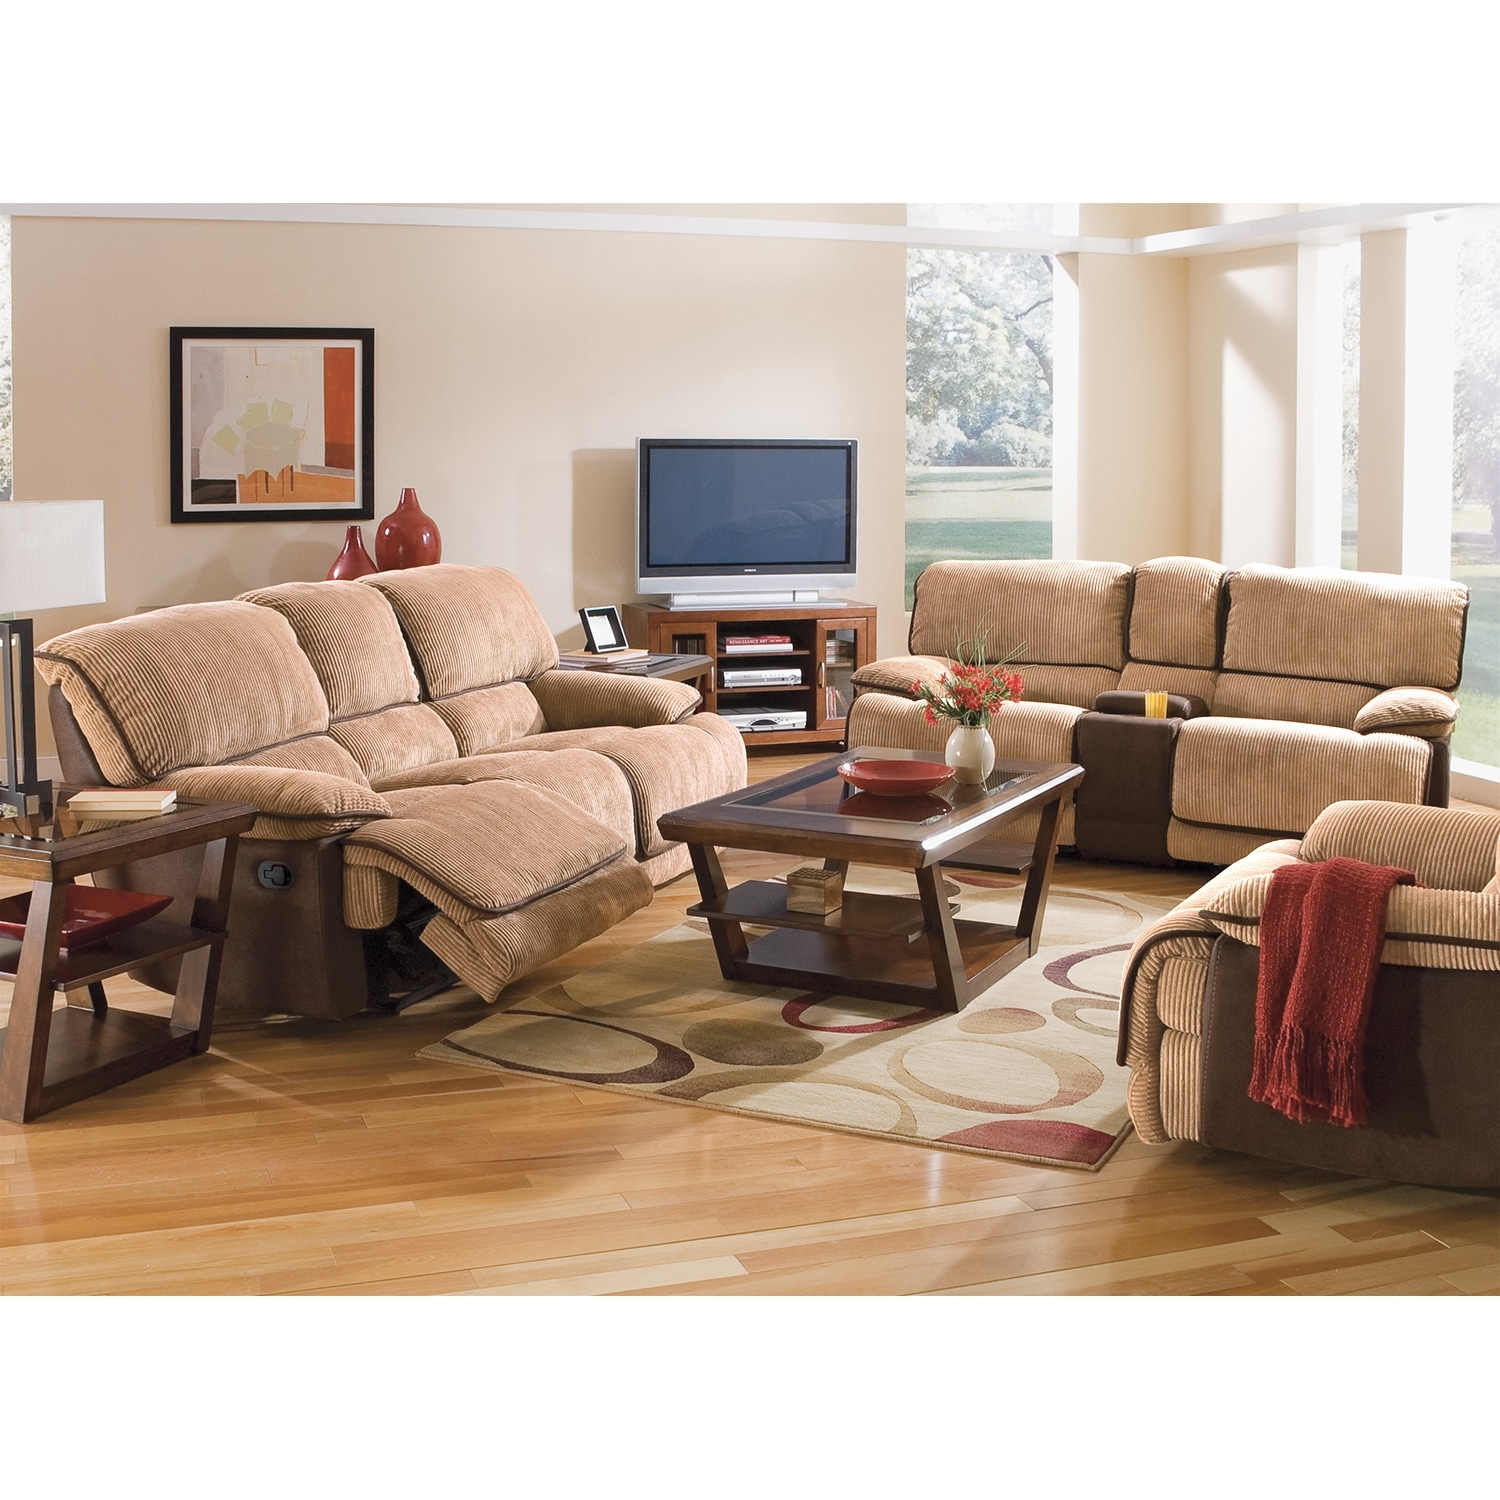 Laguna reclining sofa and gliding reclining loveseat set for Living room deals